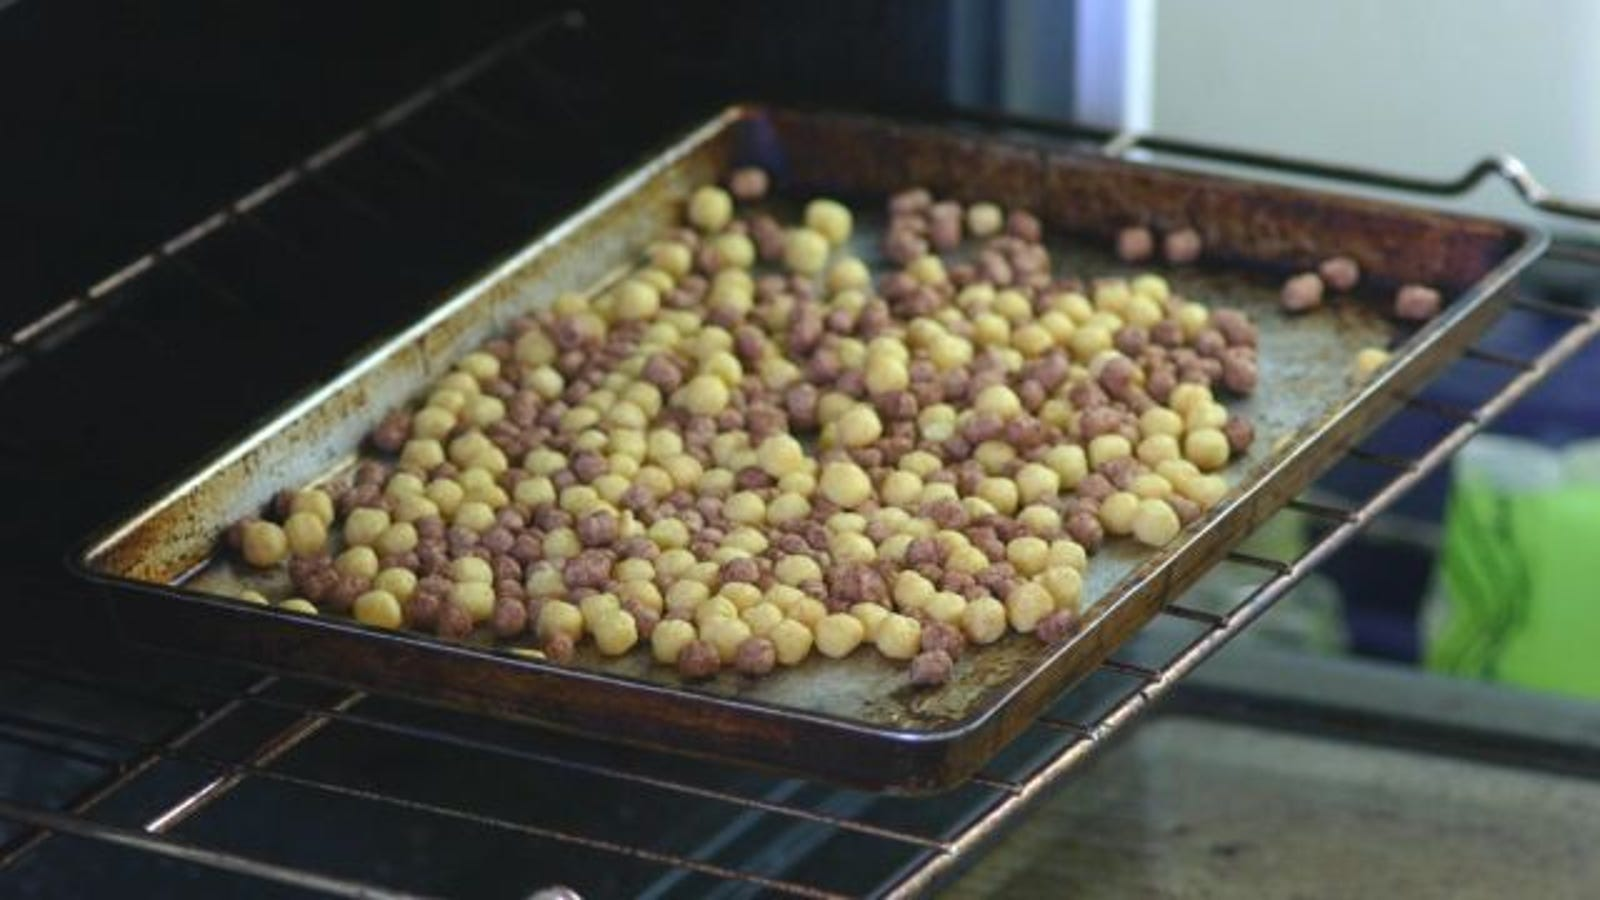 Revive stale cereal in your oven ccuart Images